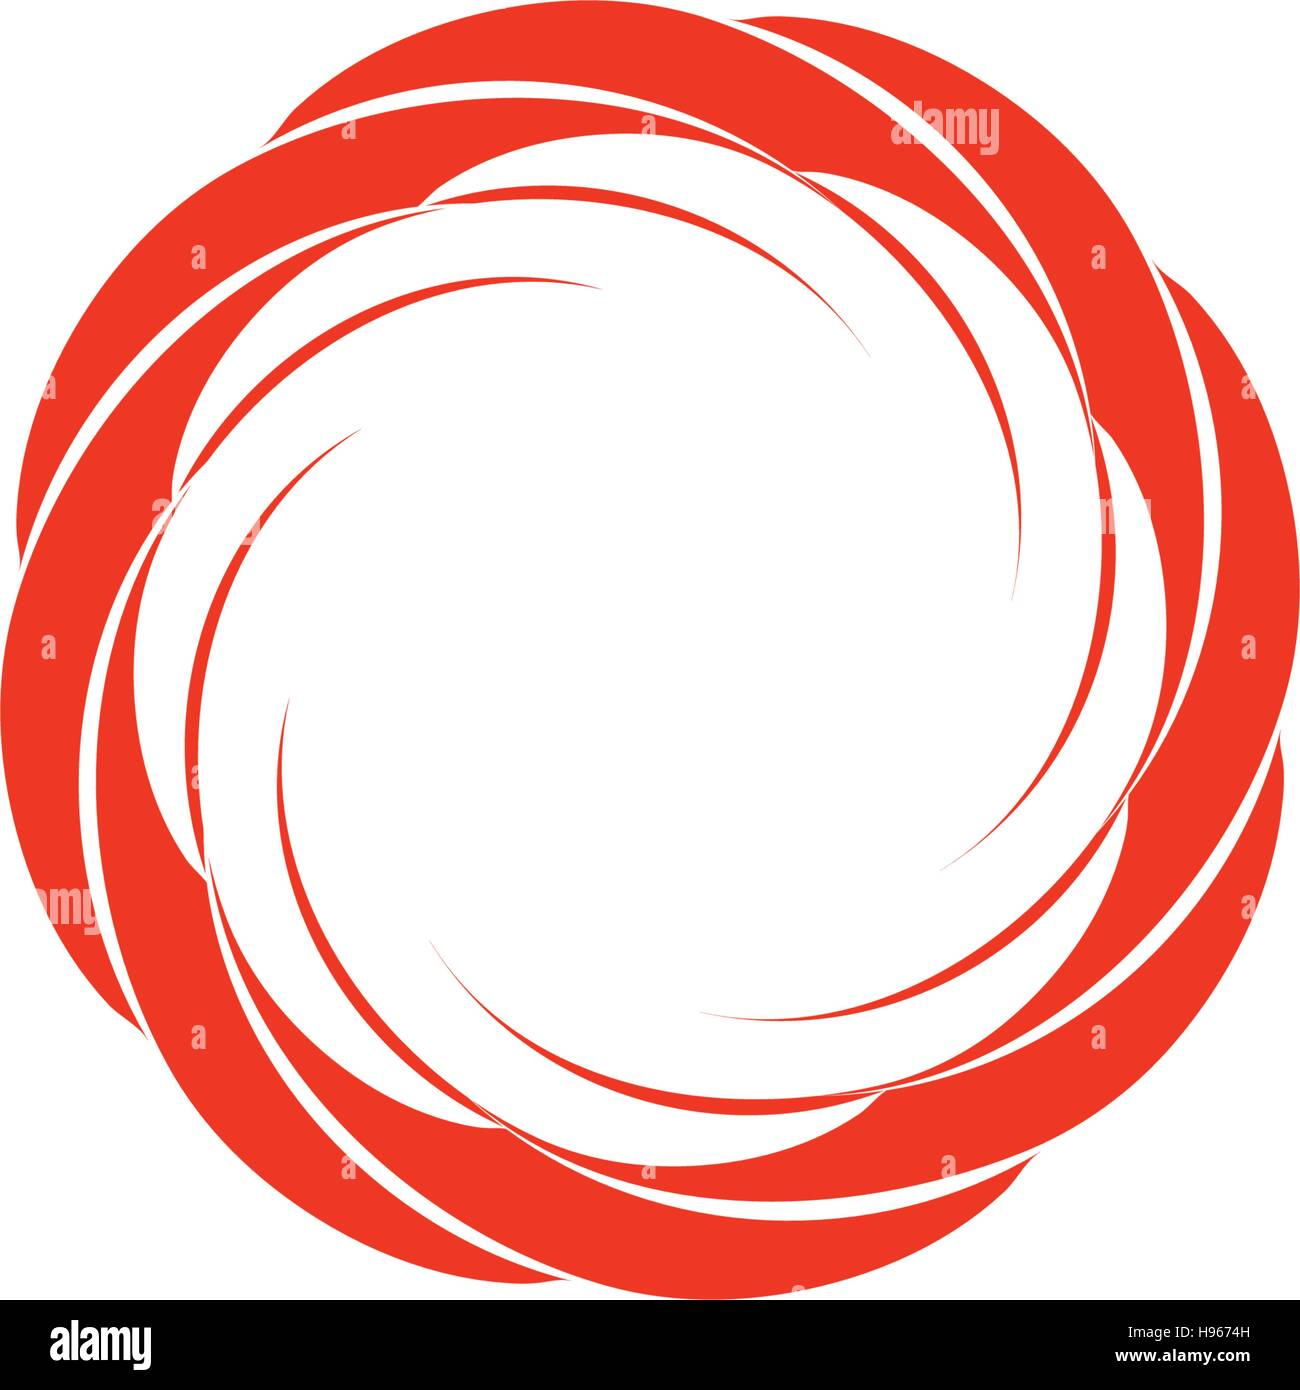 Isolated abstract red color circular sun logo. Round shape logotype. Swirl, tornado and hurricane icon. Spining hypnotic spiral sign. Photo lens symbol. Vector wheel illustration. Stock Vector